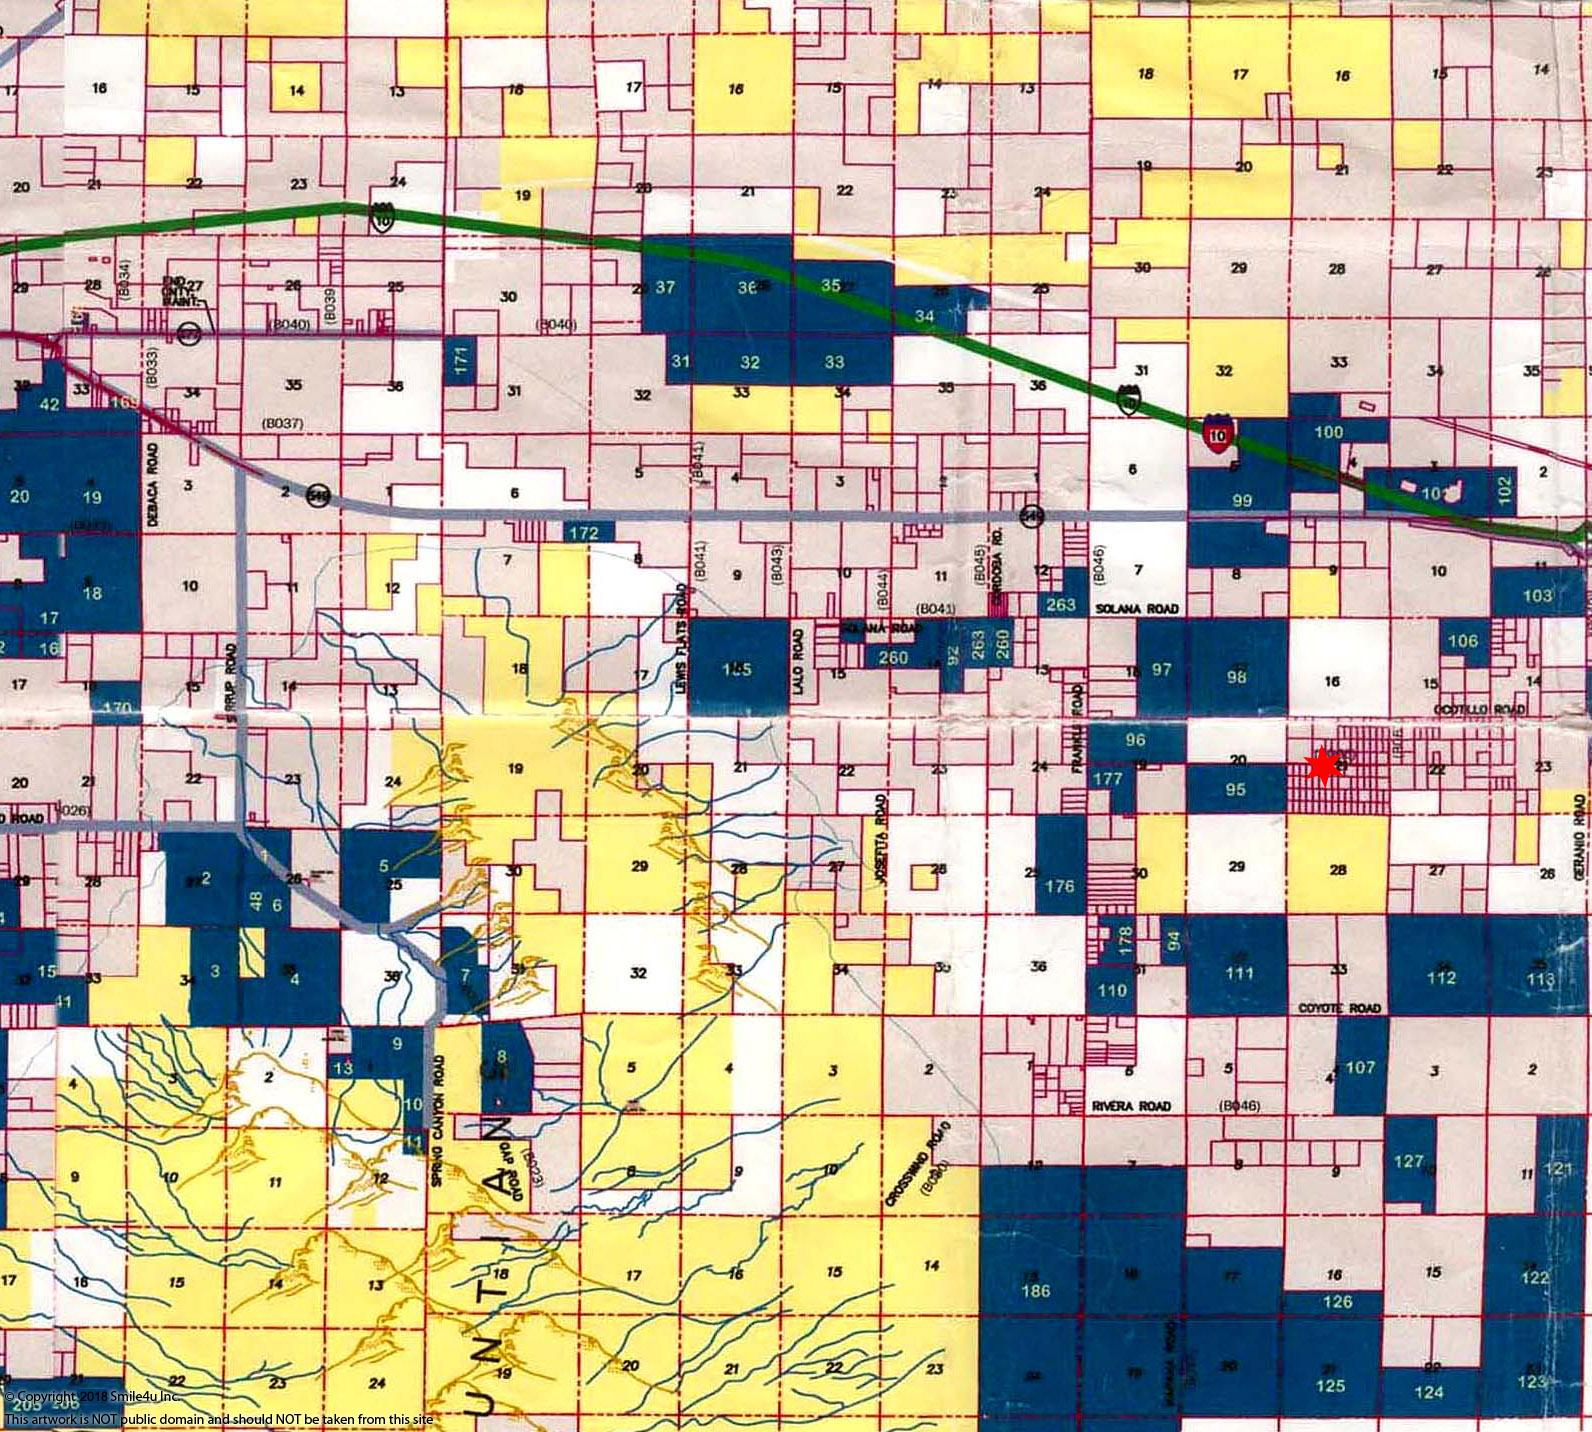 561814_watermarked_Deming Ranchettes Subdivision Color Map.jpg